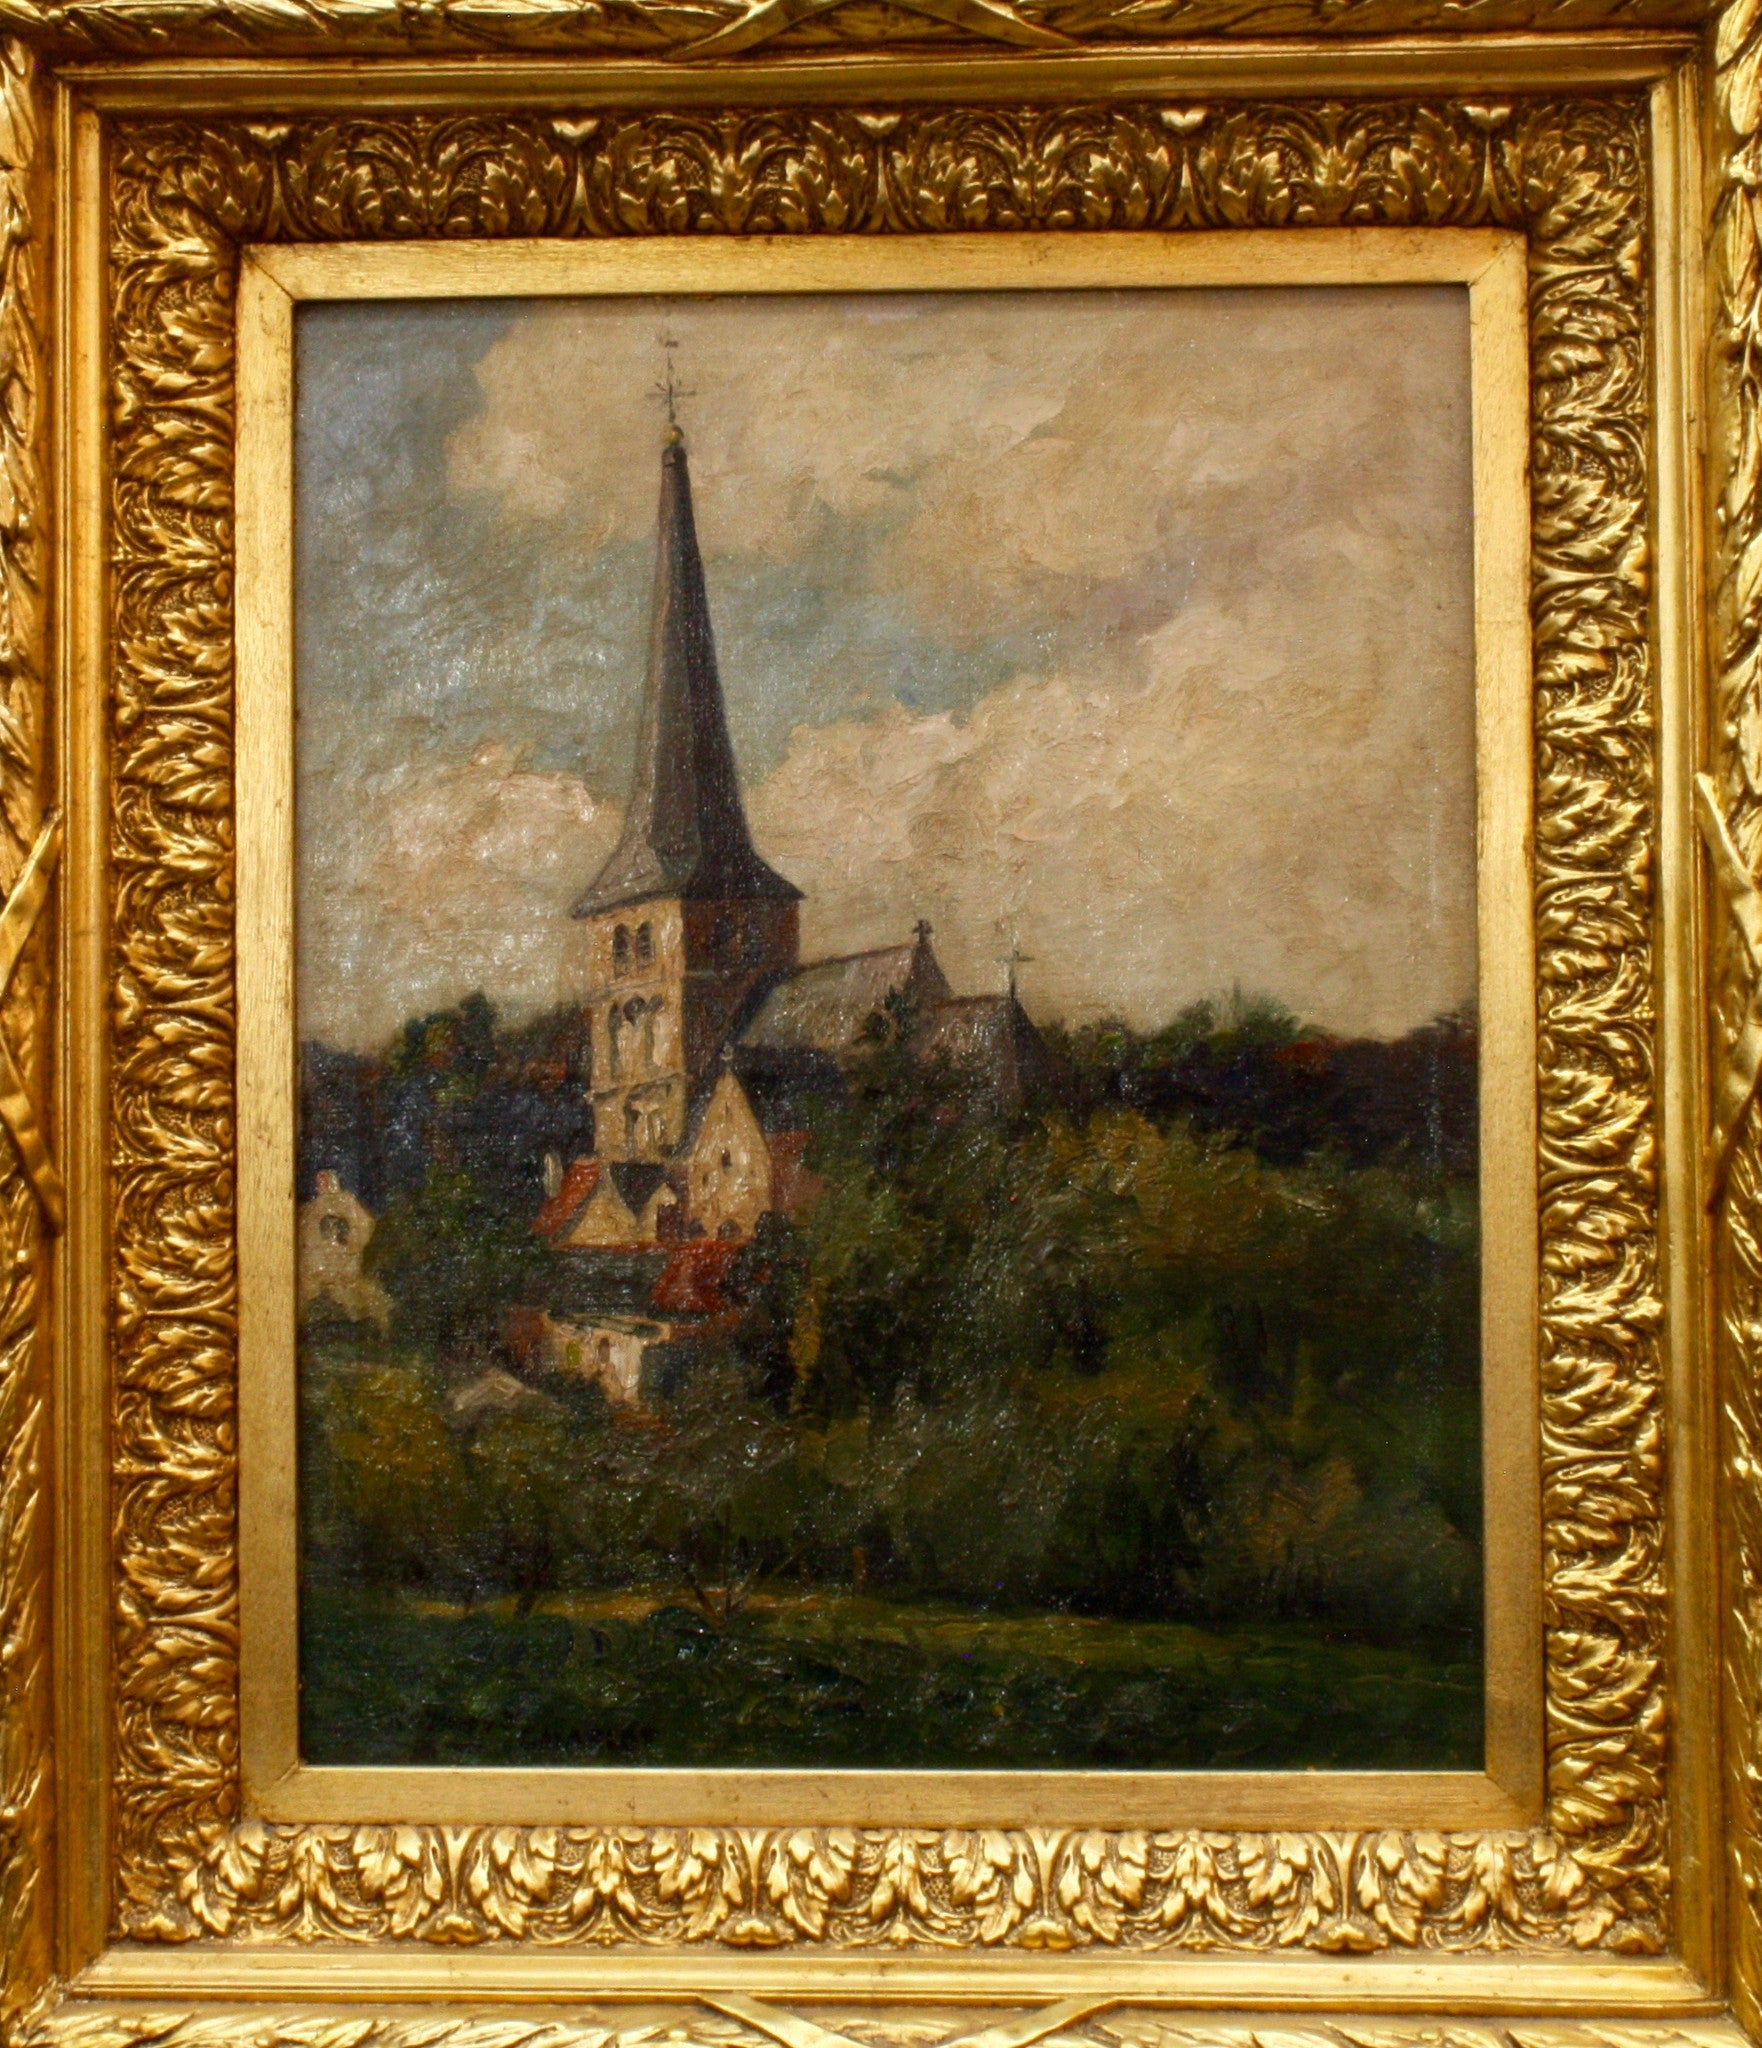 Raymond Charlot Landscape With Church